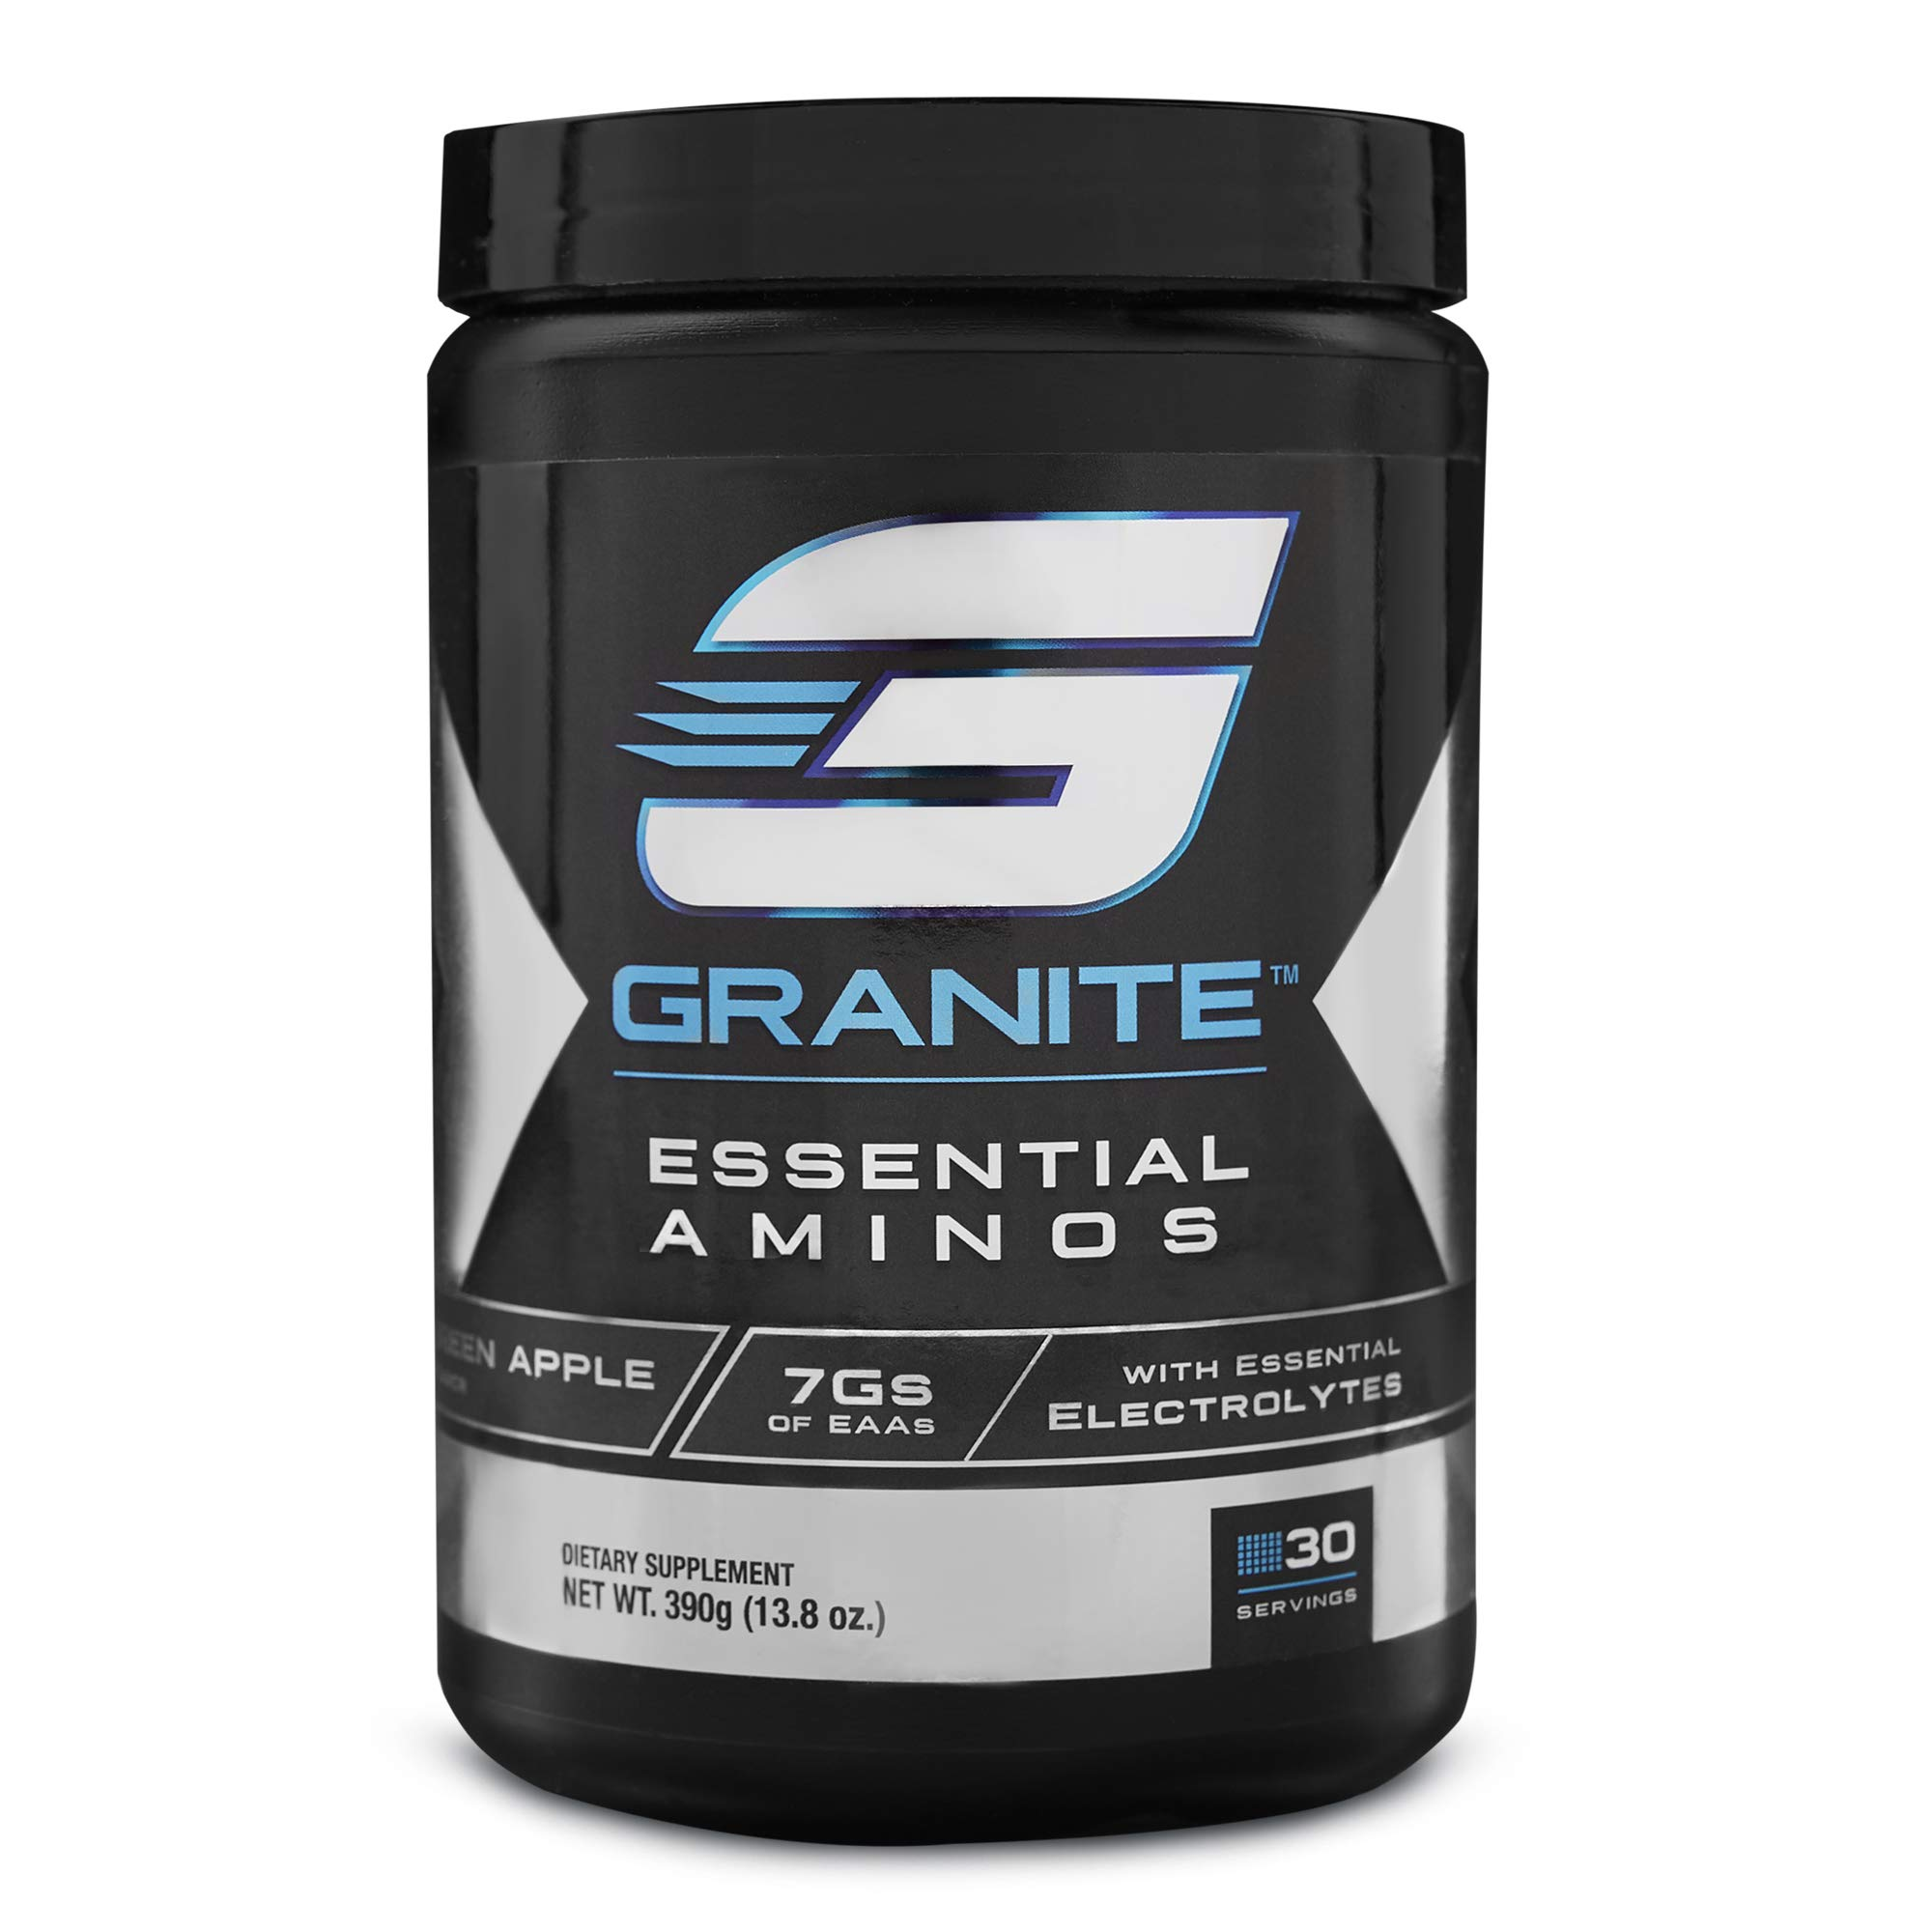 EAA Powder by Granite Supplements | 30 Servings of Essential Aminos Green Apple to Promote Muscle Growth, Train Harder, and Recover Faster | Includes EAAs, BCAAs, and Electrolytes by Granite Supplements